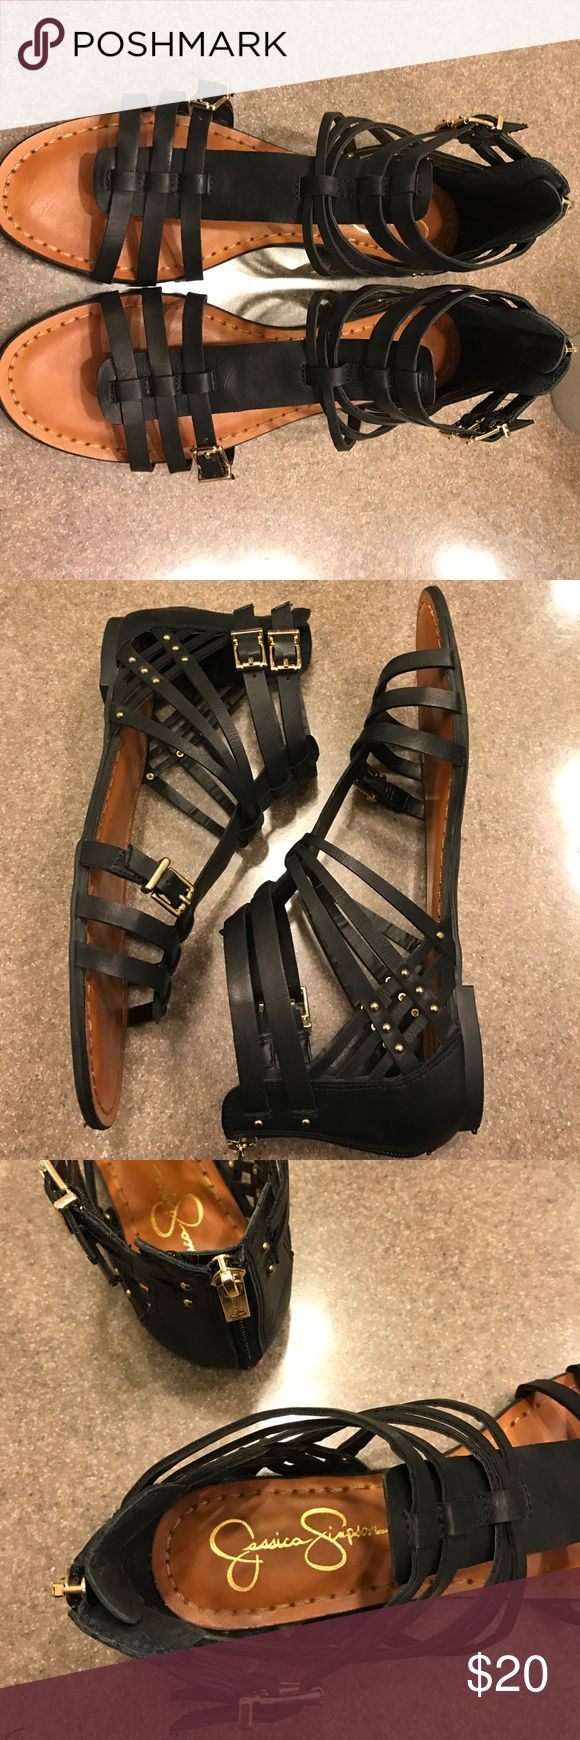 Jessica Simpson Sandals These black sandals are super cute! Only worn a couple of times, I'm just trying to make room in my closet. Some of the straps are adjustable for the perfect fit Jessica Simpson Shoes Sandals